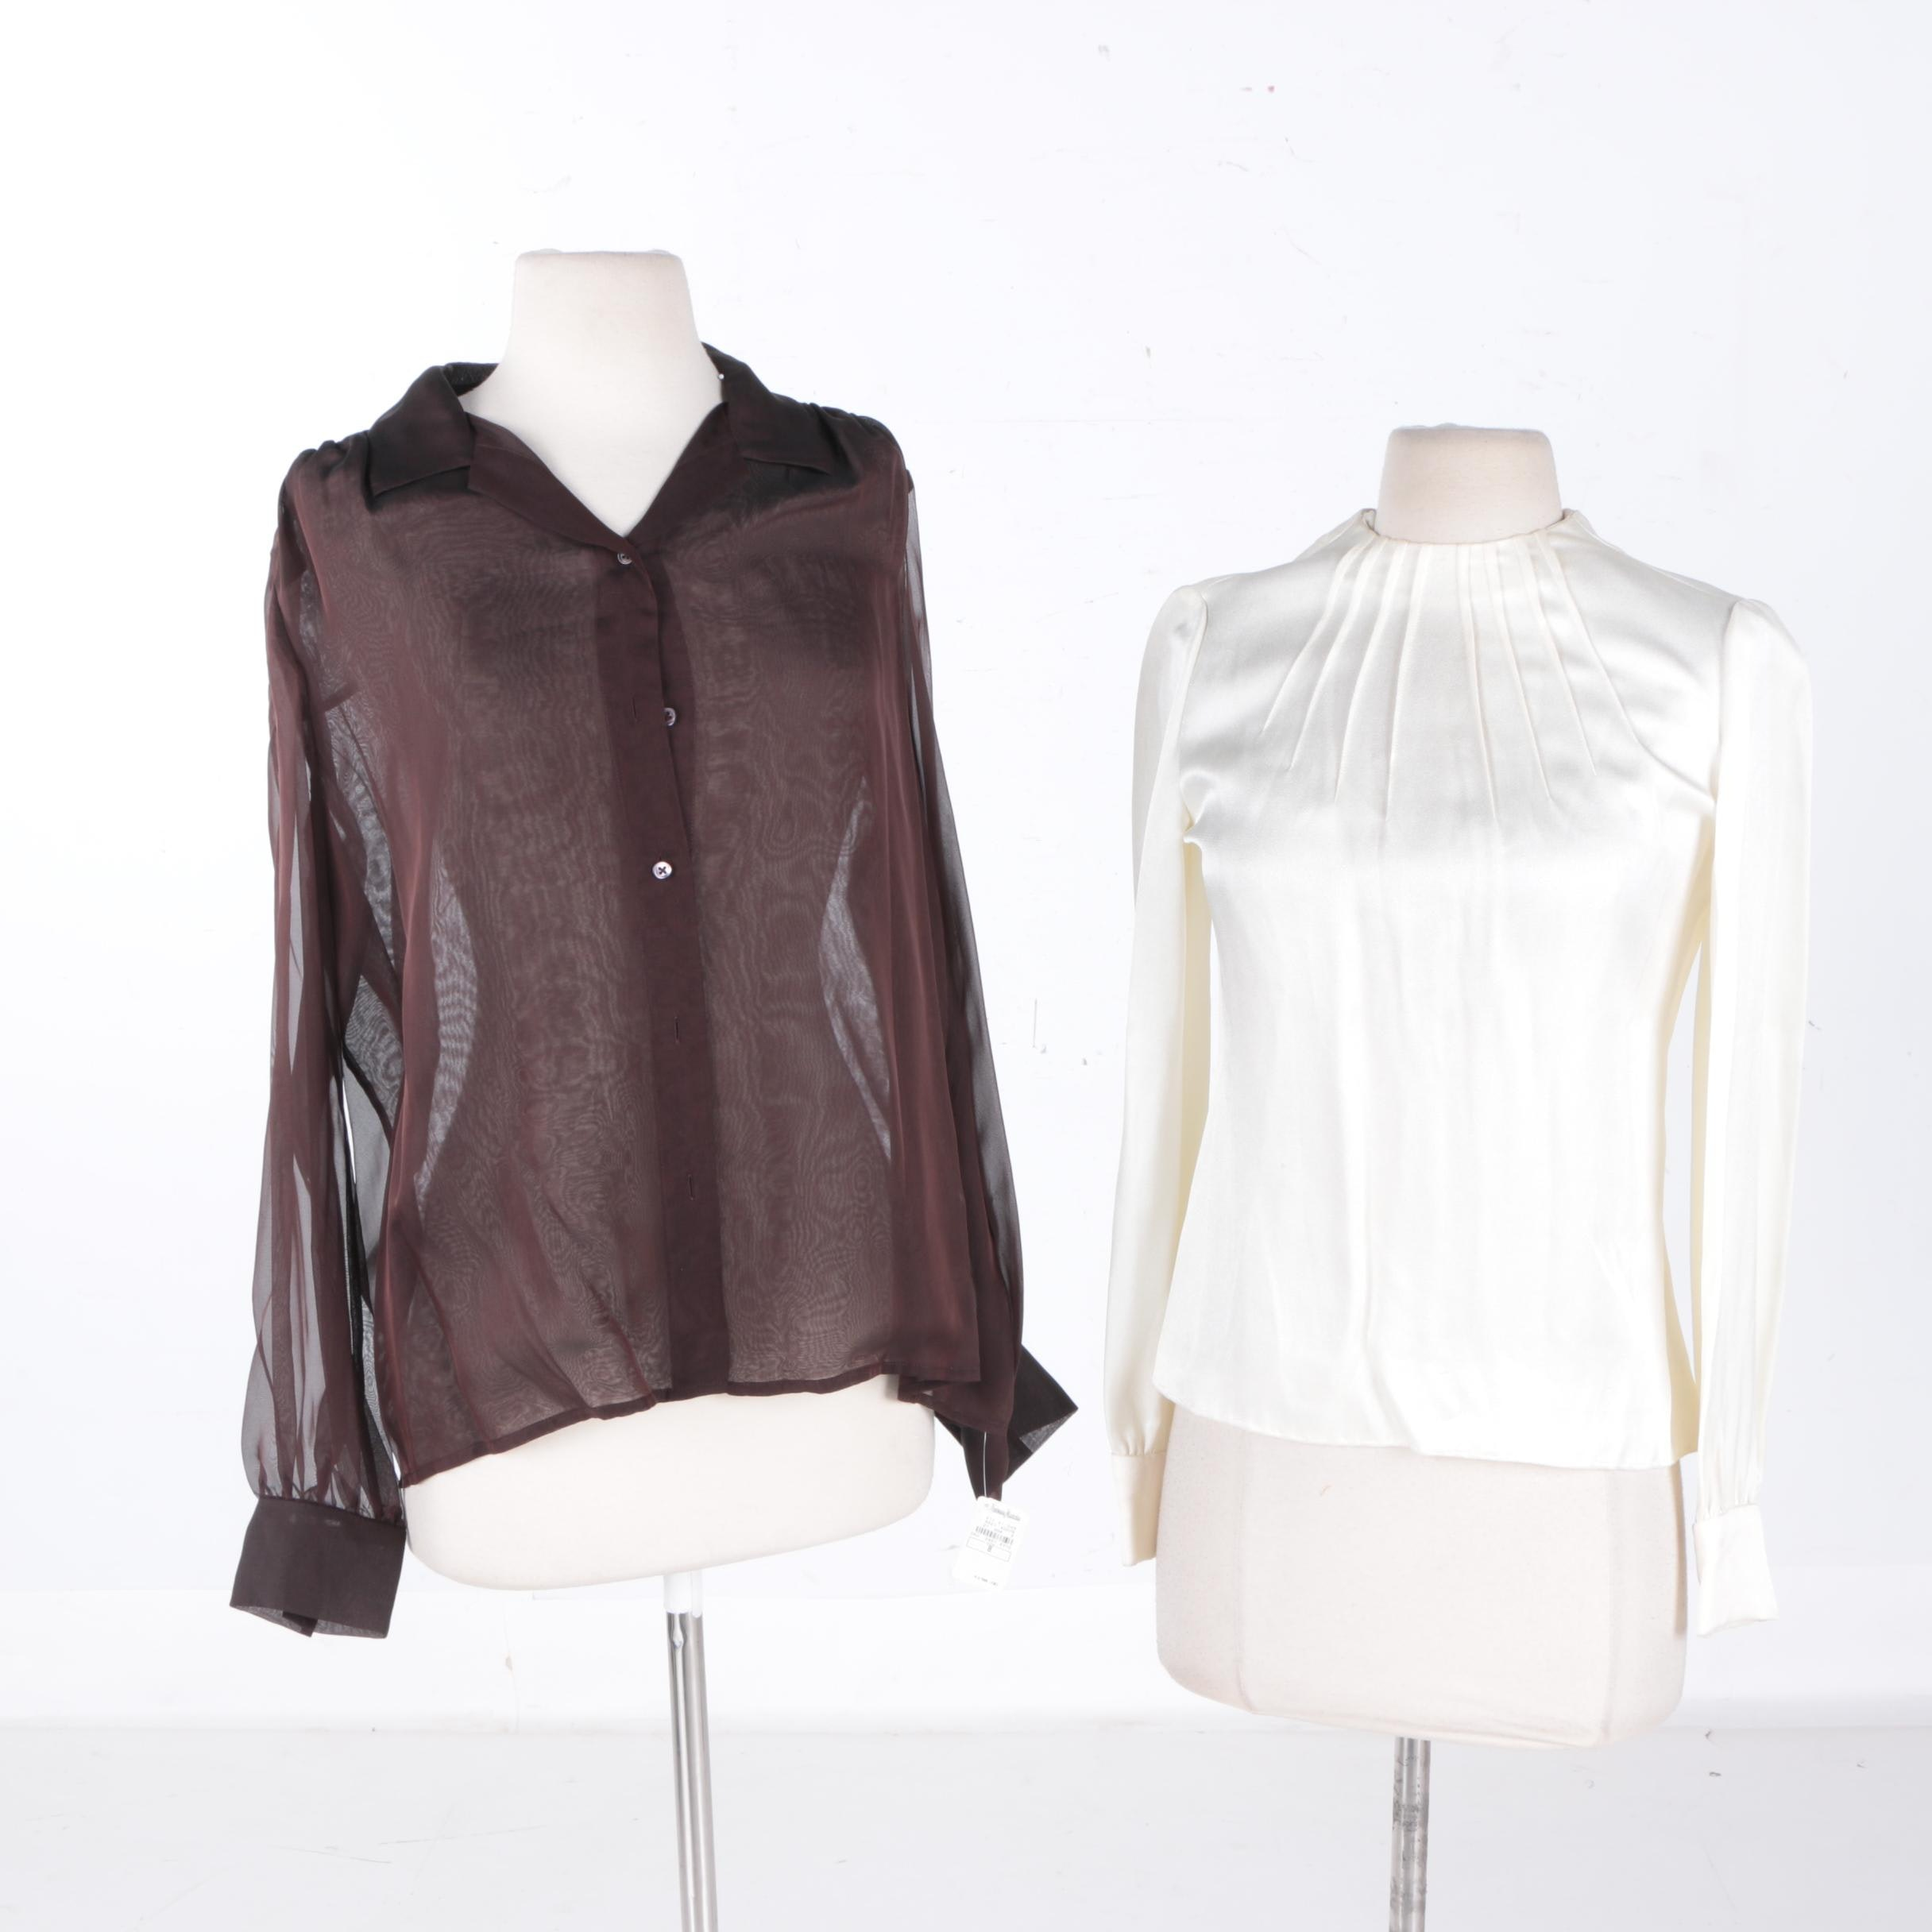 Women's Blouses including DKNY